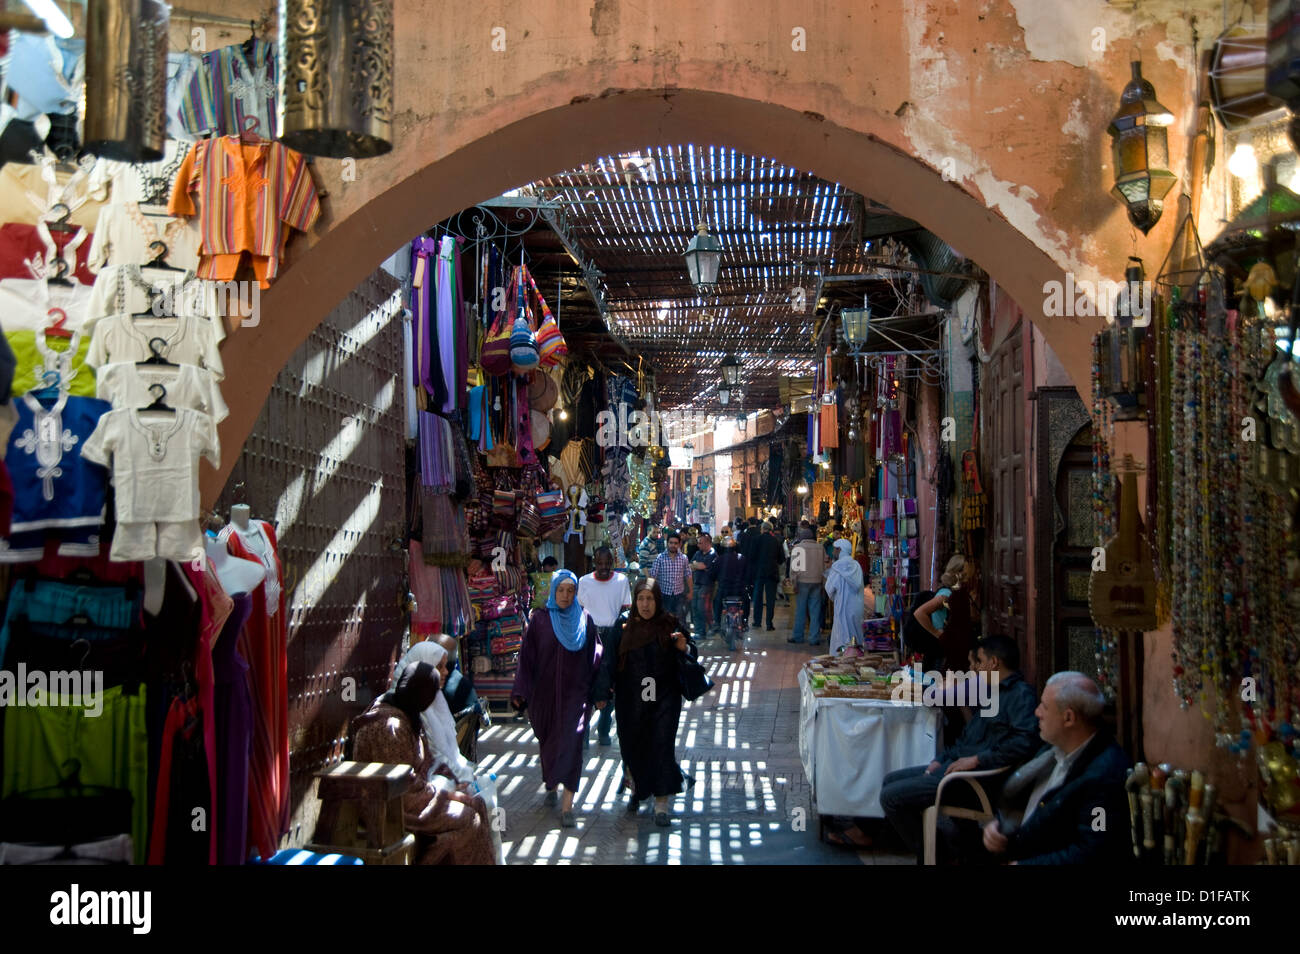 The view through an arch of shoppers in the souk in Marrakech, Morocco, North Africa, Africa - Stock Image